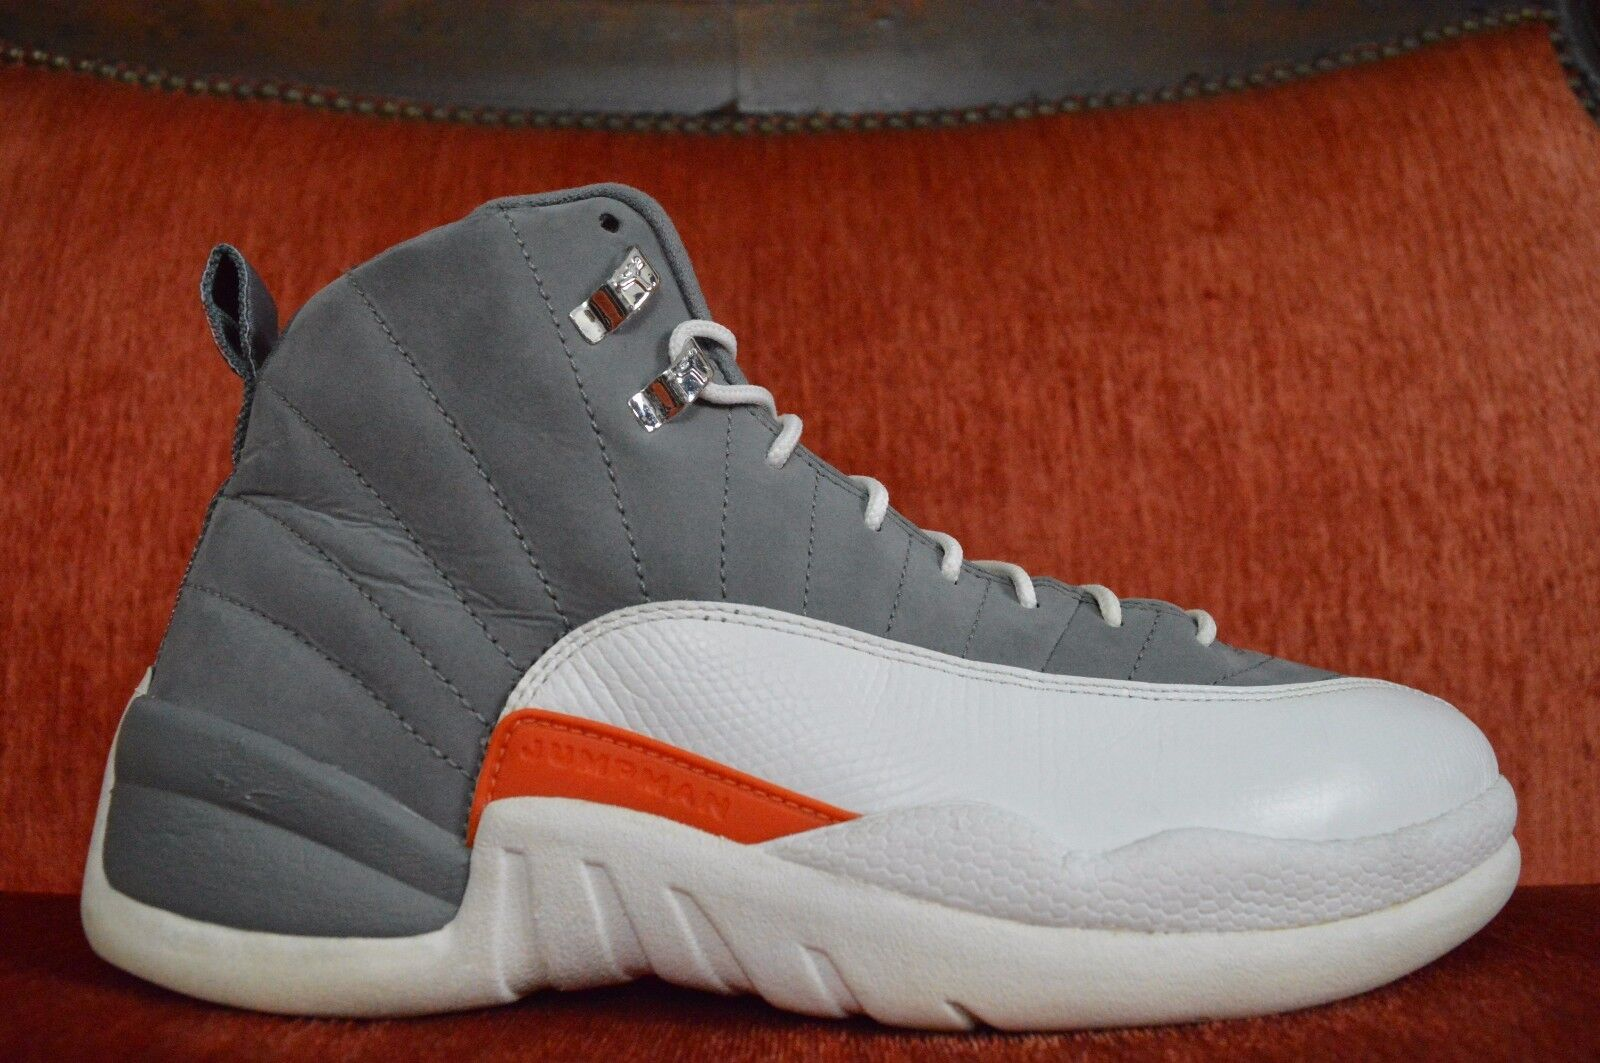 Nike Air Jordan XII 12 Retro Cool Grey/White-Orange 2018 130690-012 Comfortable New shoes for men and women, limited time discount